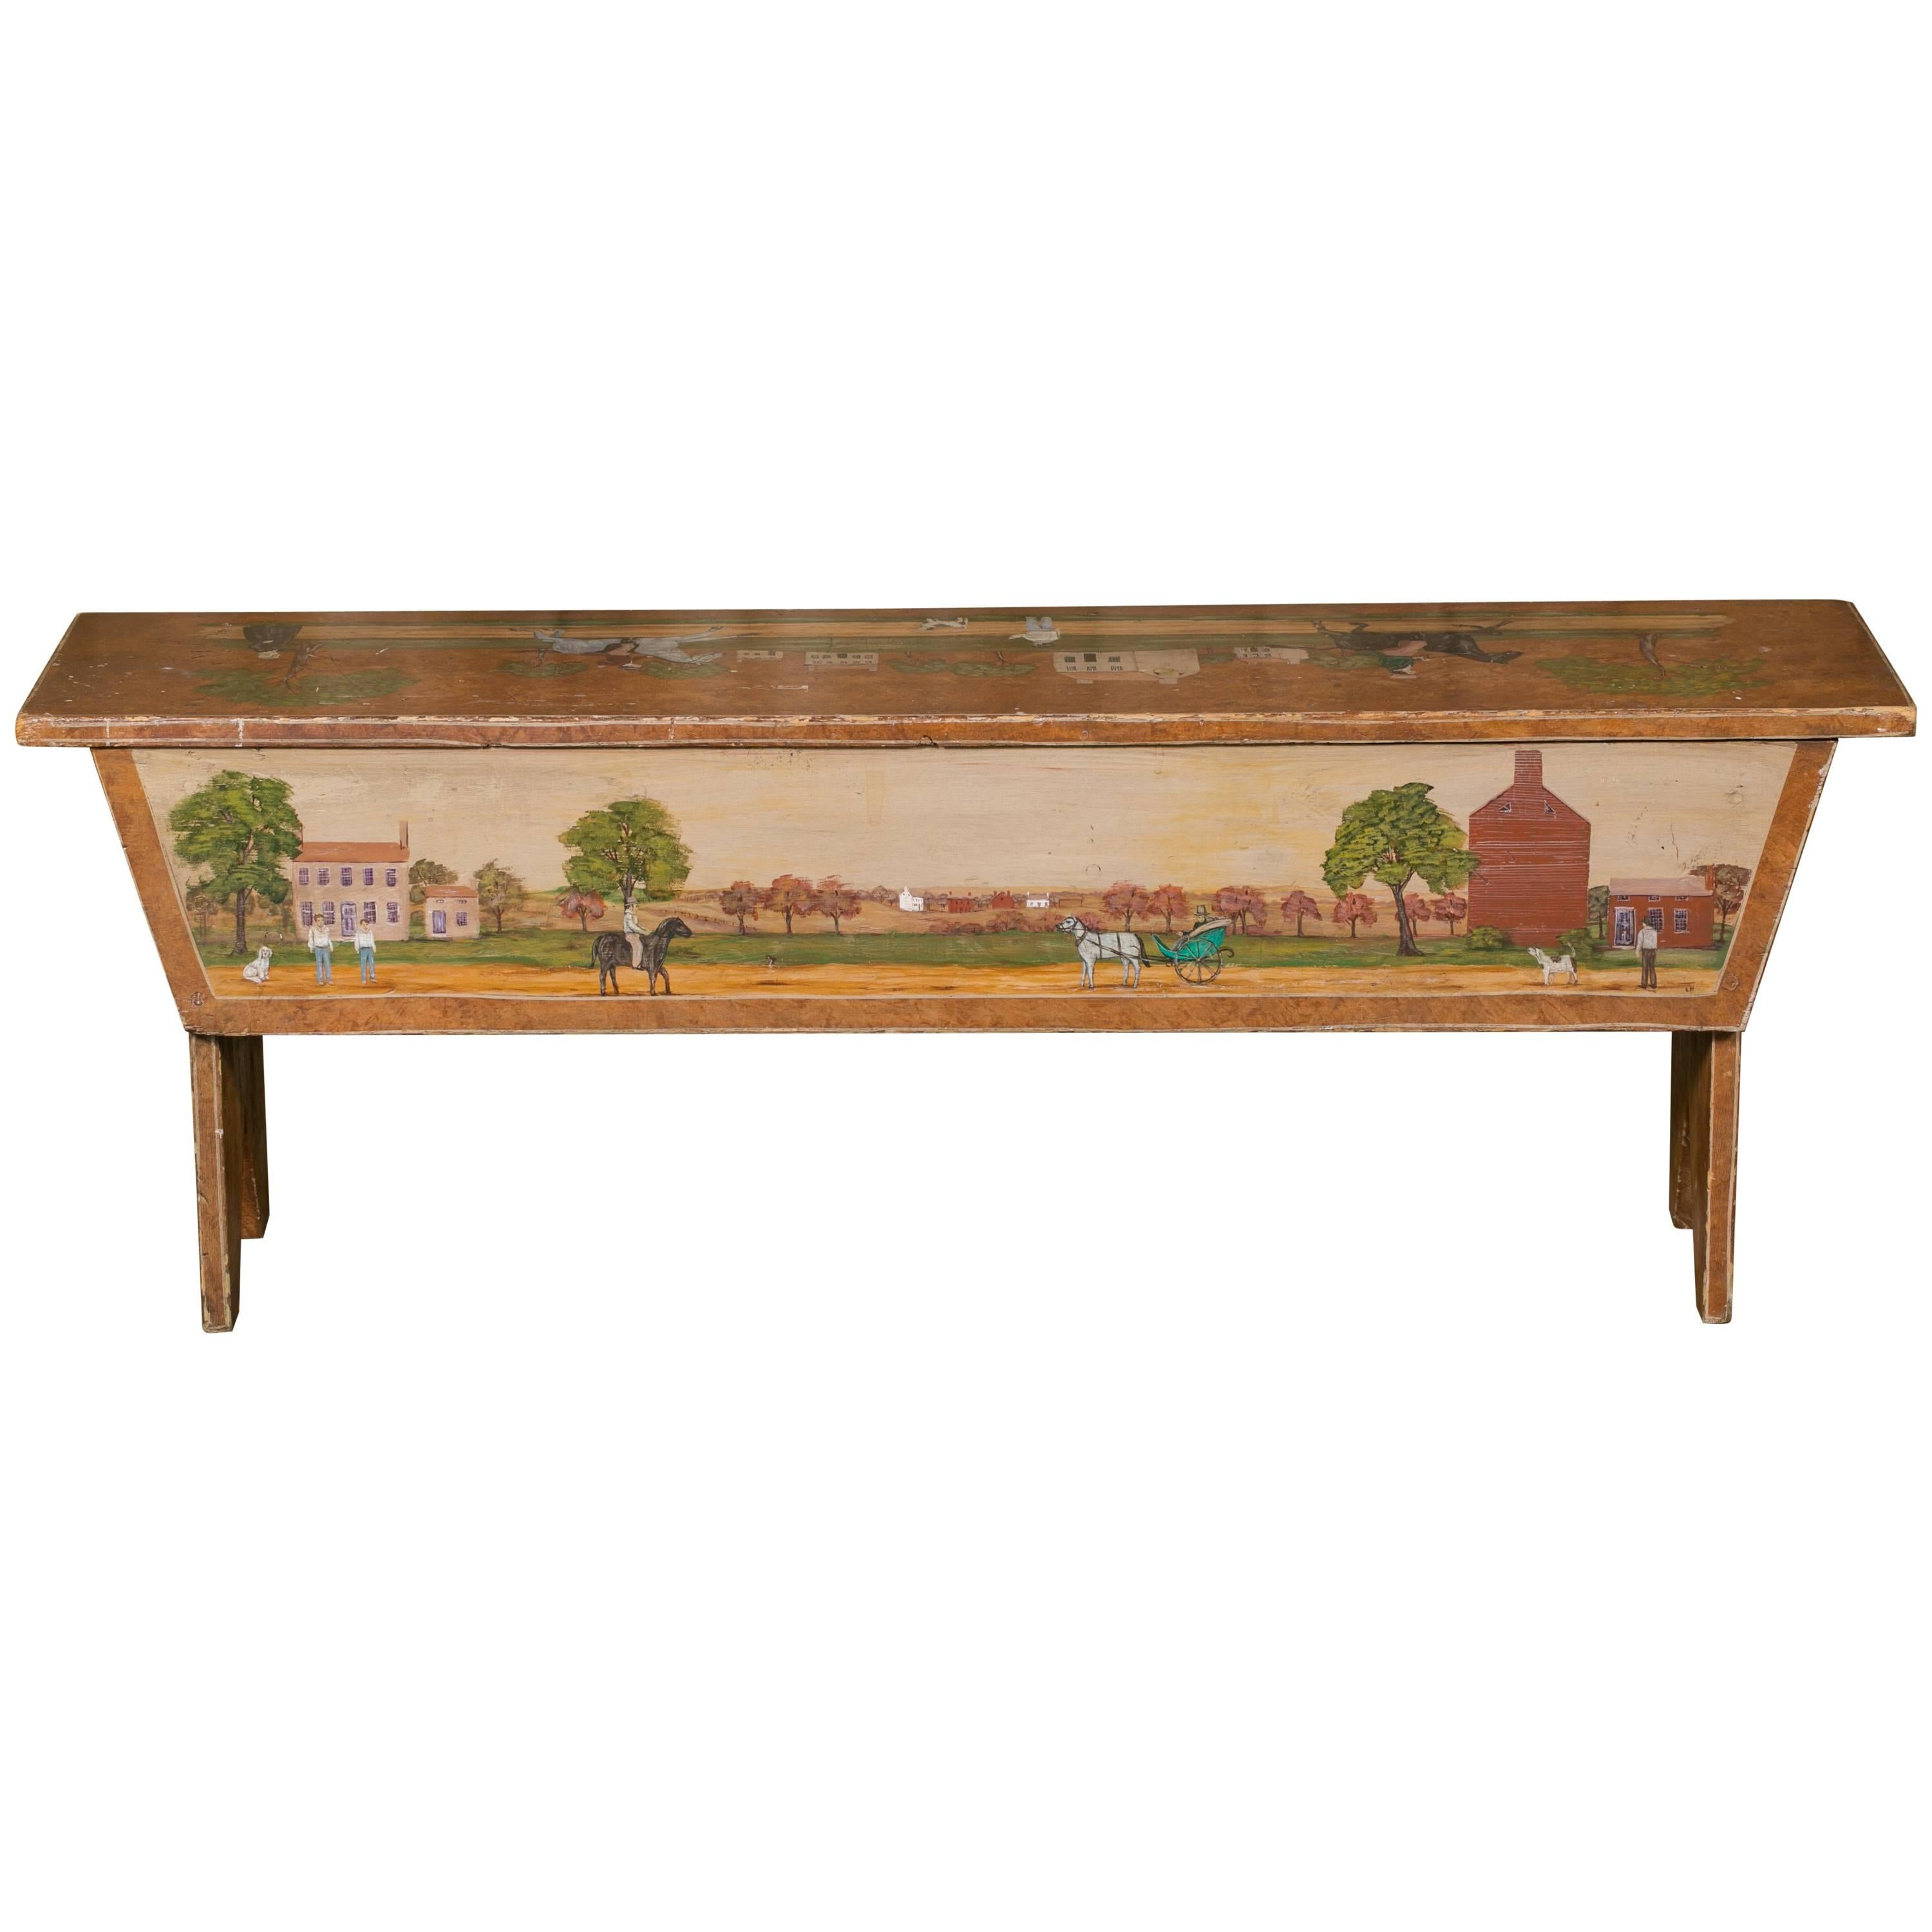 Antique Wooden Bench HandPainted By Artist Lew Hudnall Circa 1890 For Sale Antique Wooden Bench C77